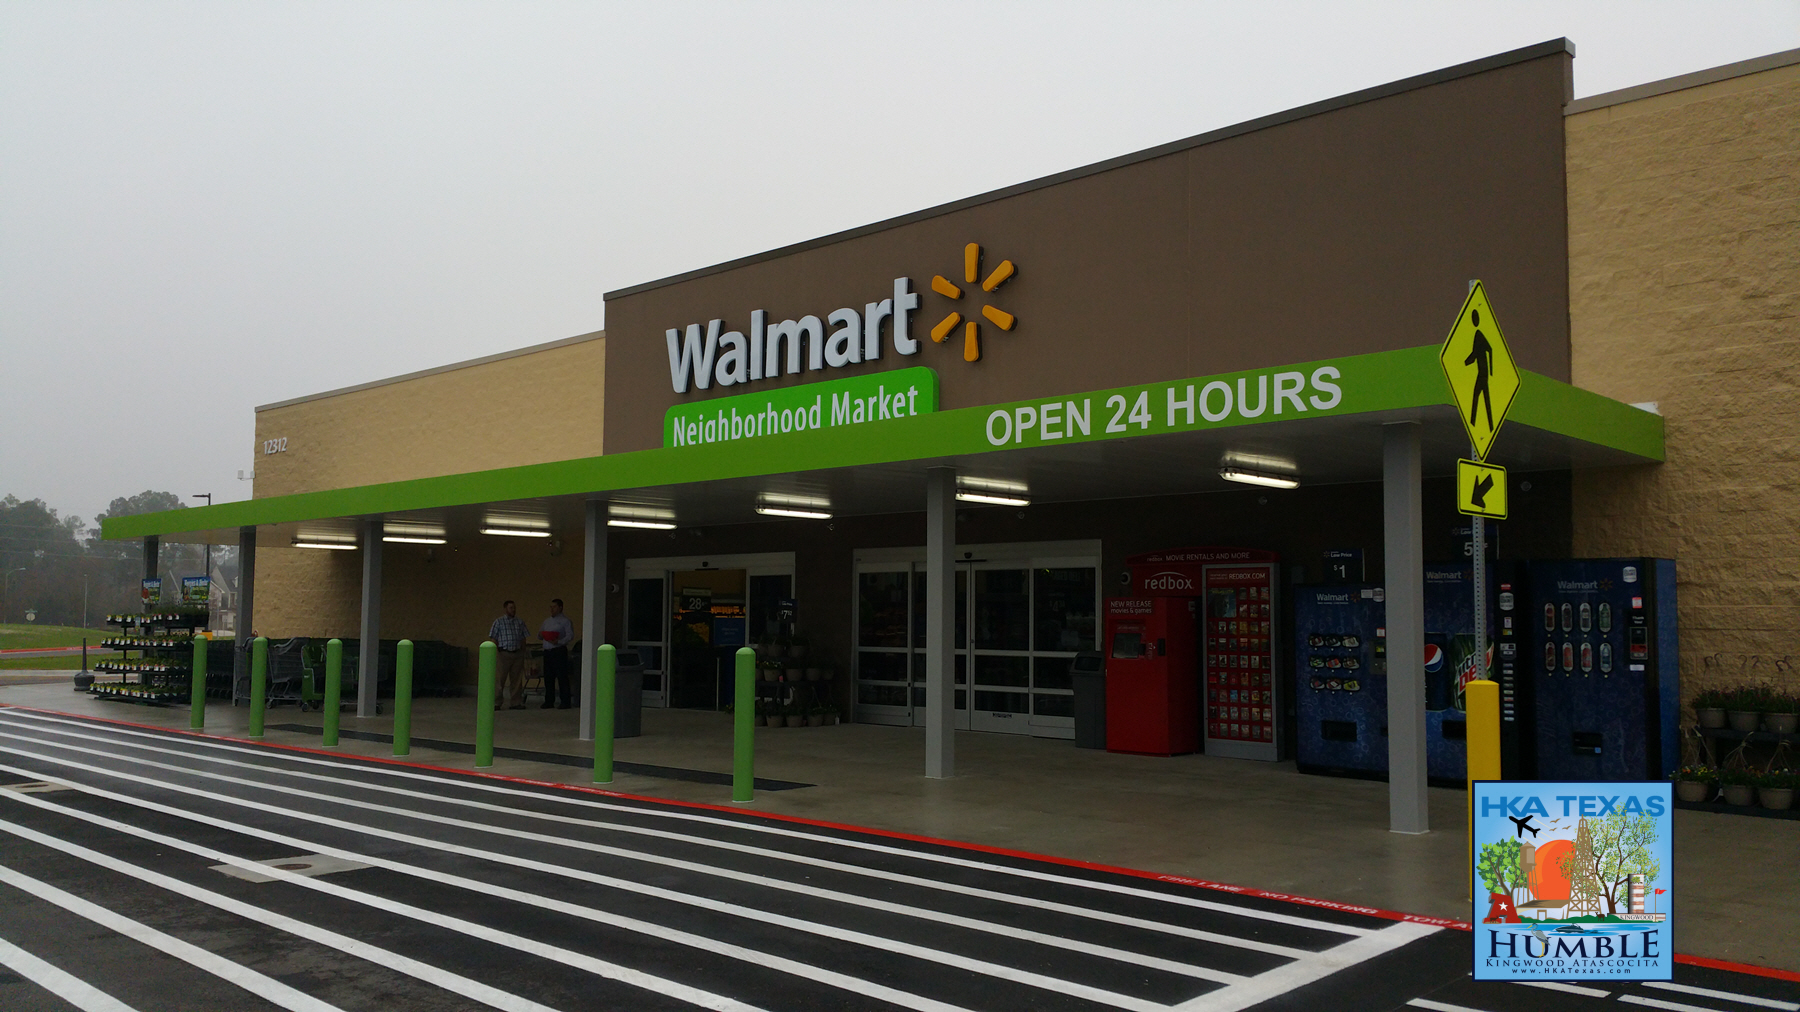 walmart neighborhood market is now open in atascocita photos google map location id 2037